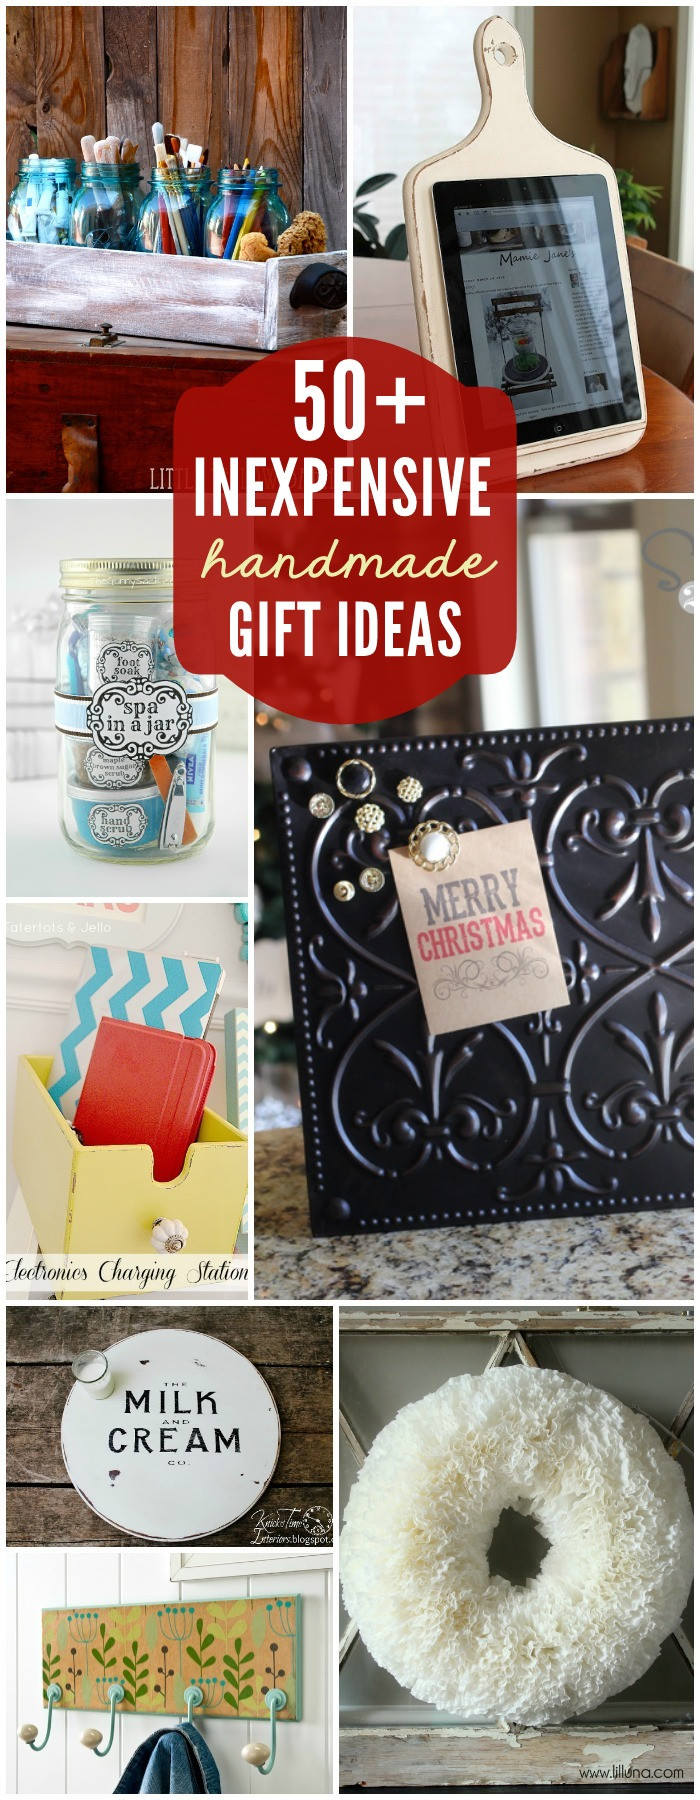 Best ideas about Cheap DIY Christmas Gifts . Save or Pin Inexpensive Gift Ideas Now.